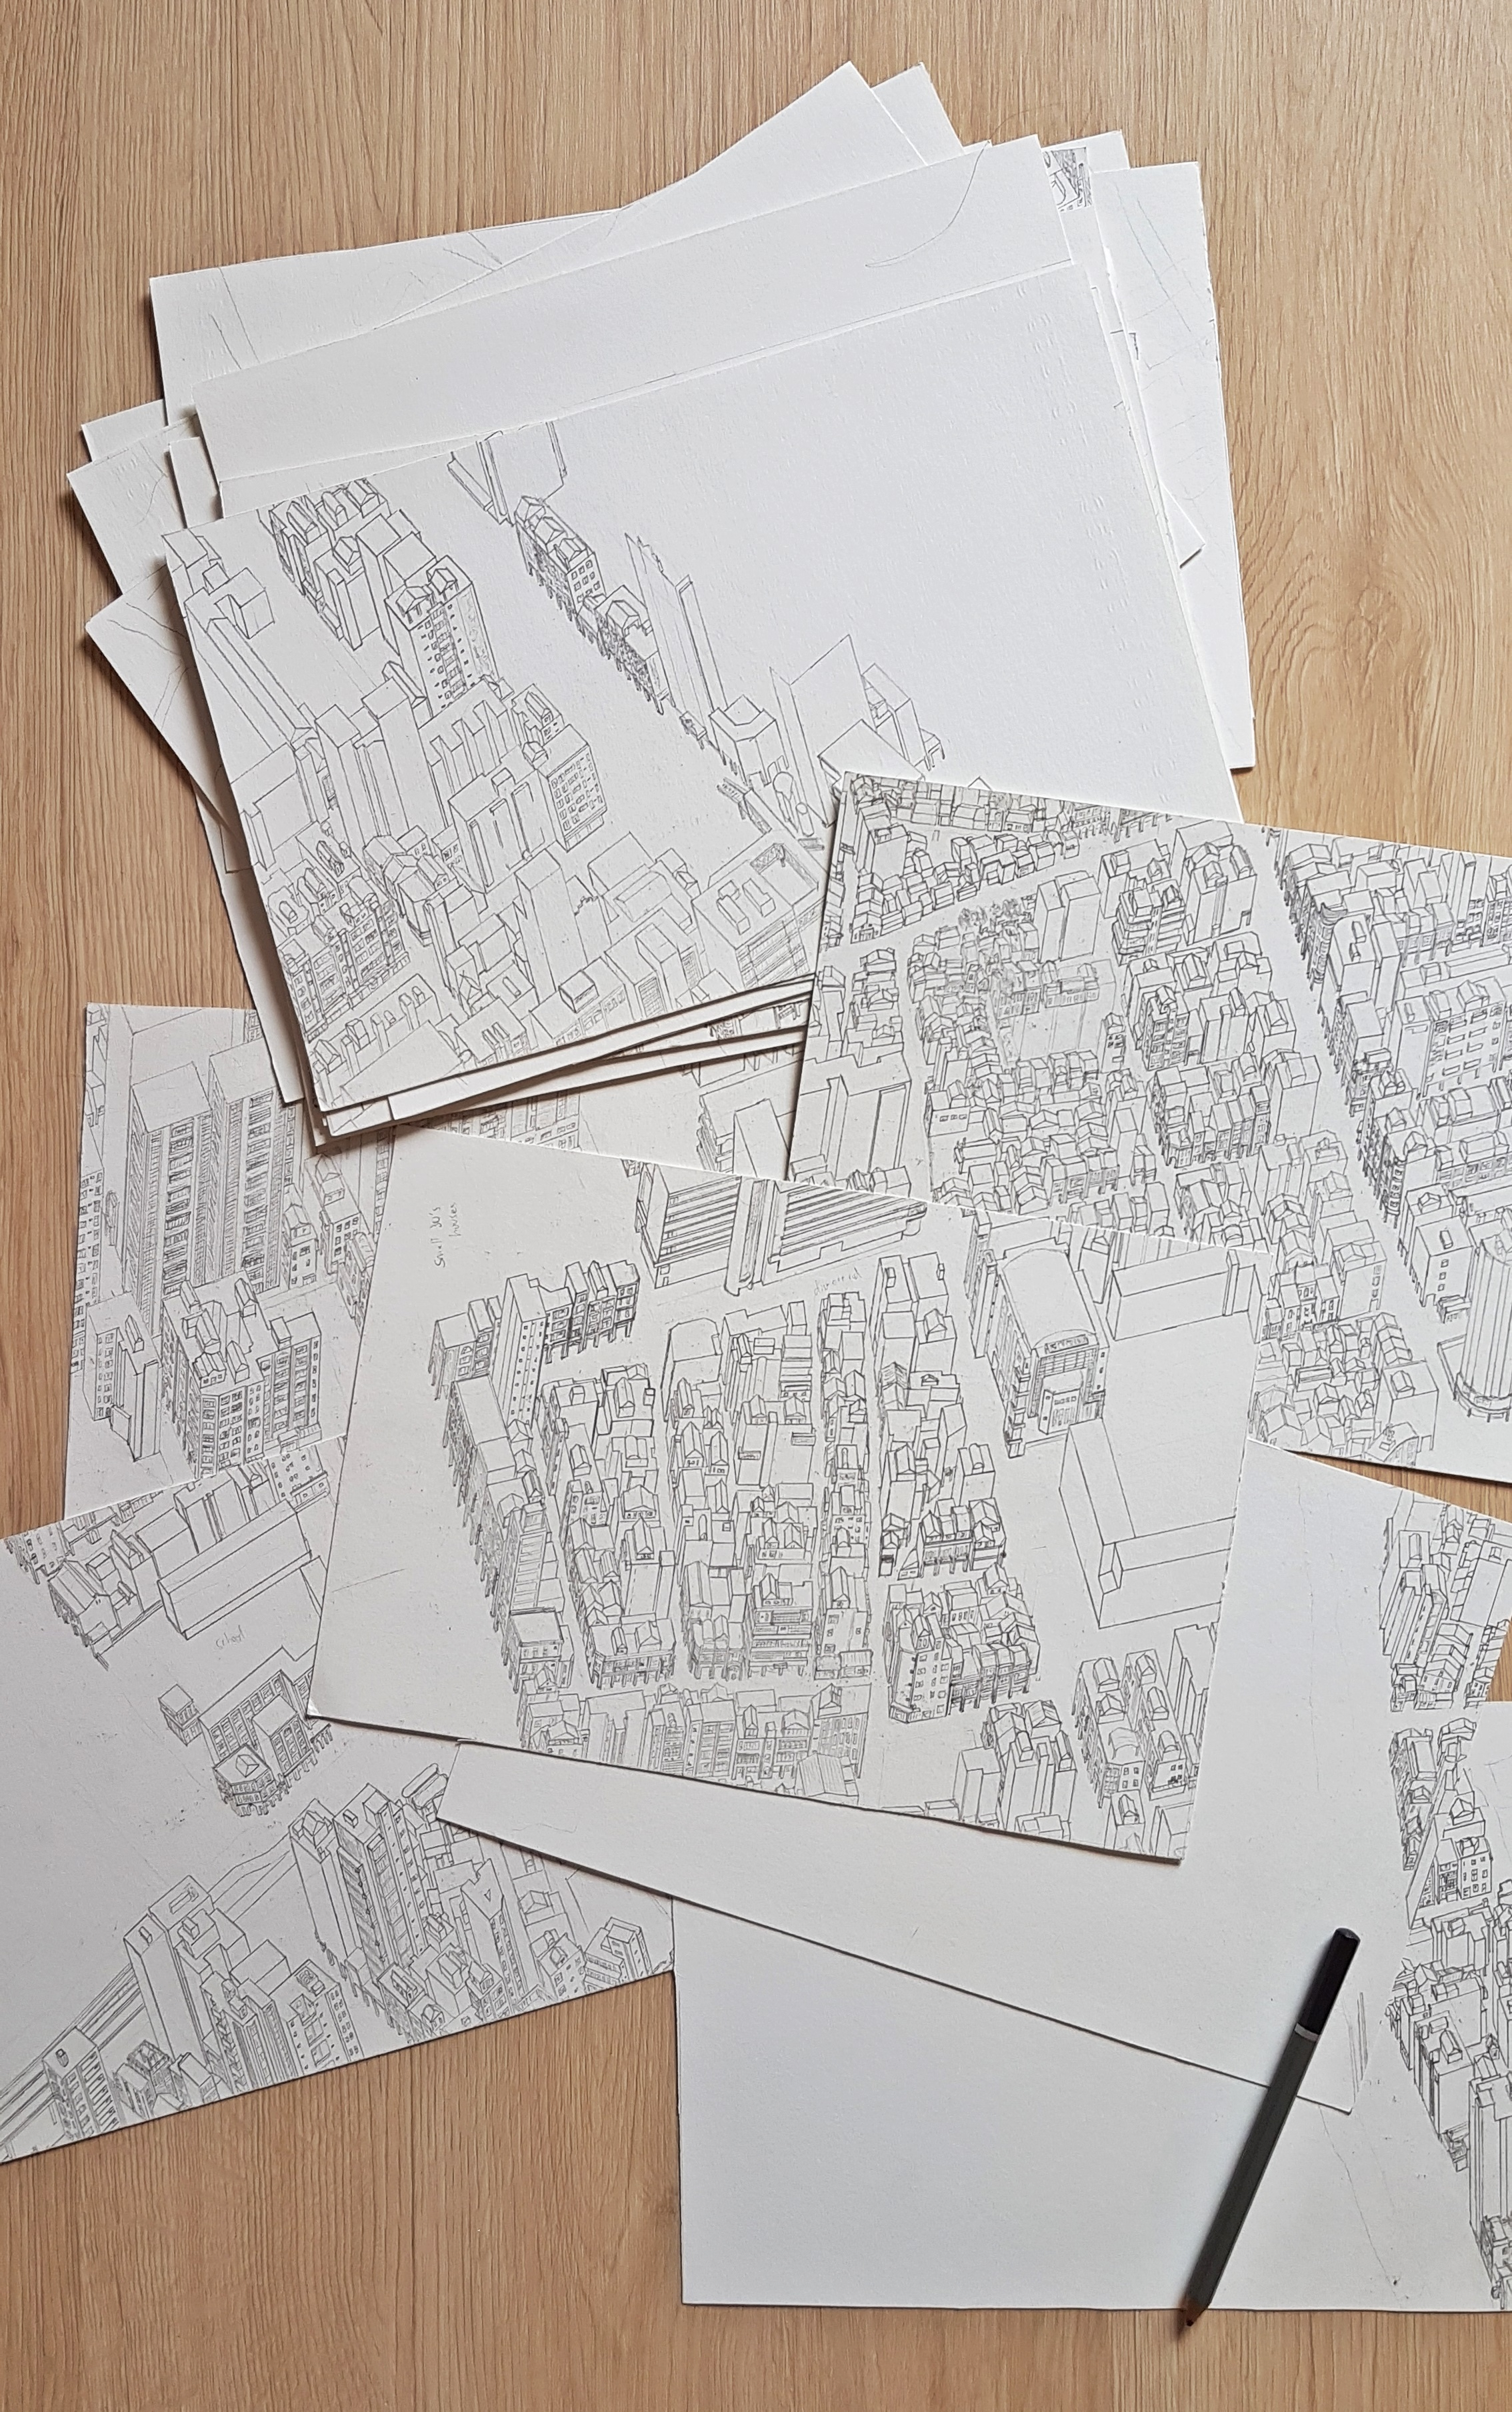 The Dalongdong Map. Despite the image it's mostly blank.One of the few projects that I've abandoned for a while. From back when I had a tiny desk and drew on small panels